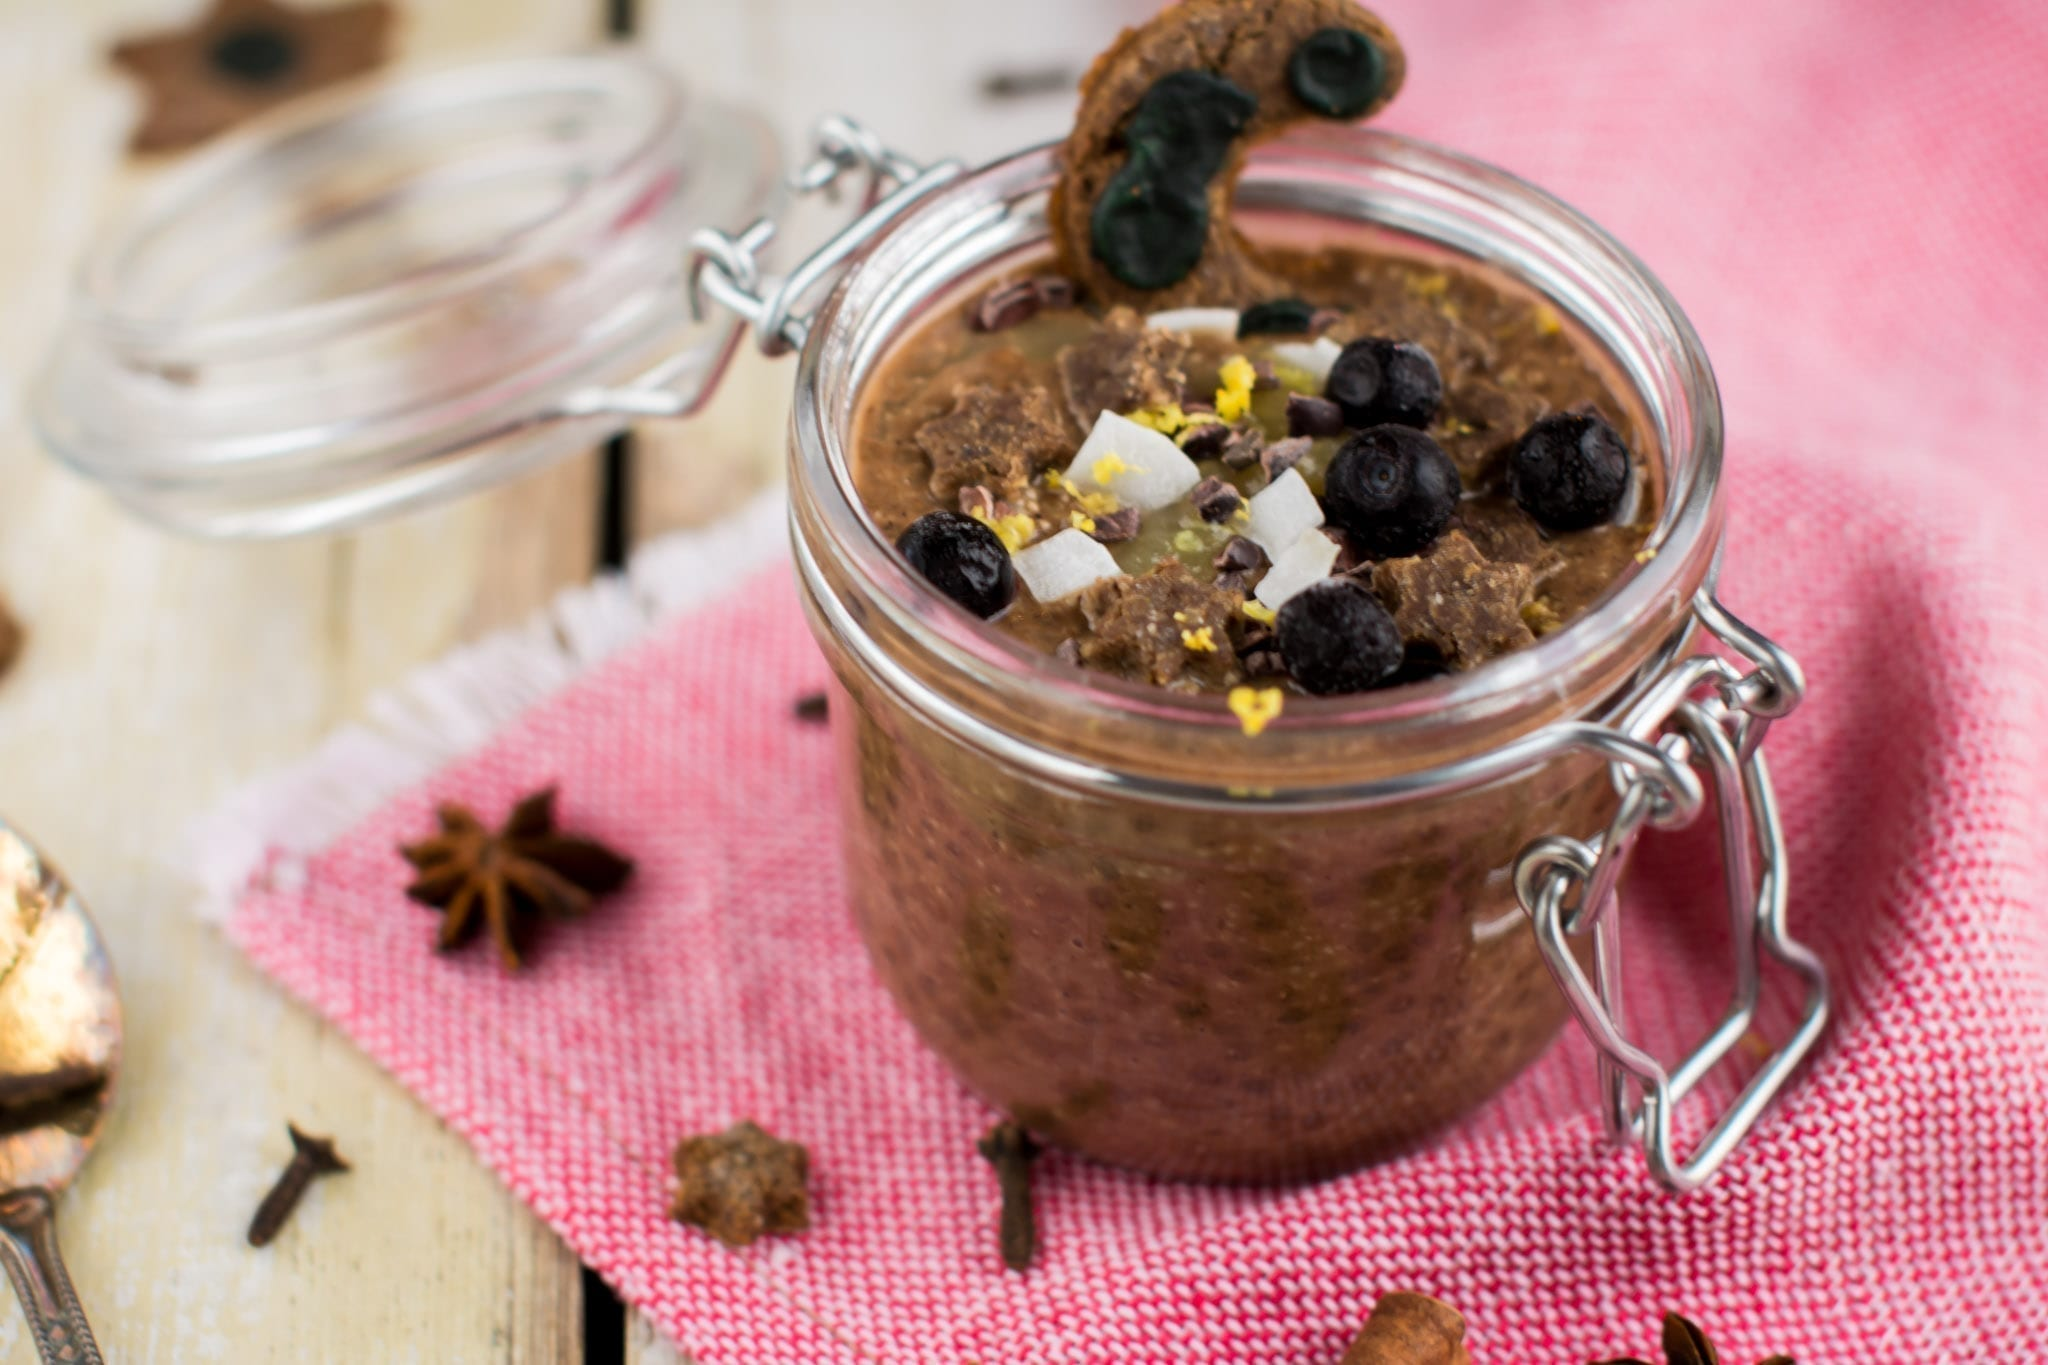 vegan candida cleanse meal plan chia pudding with carob